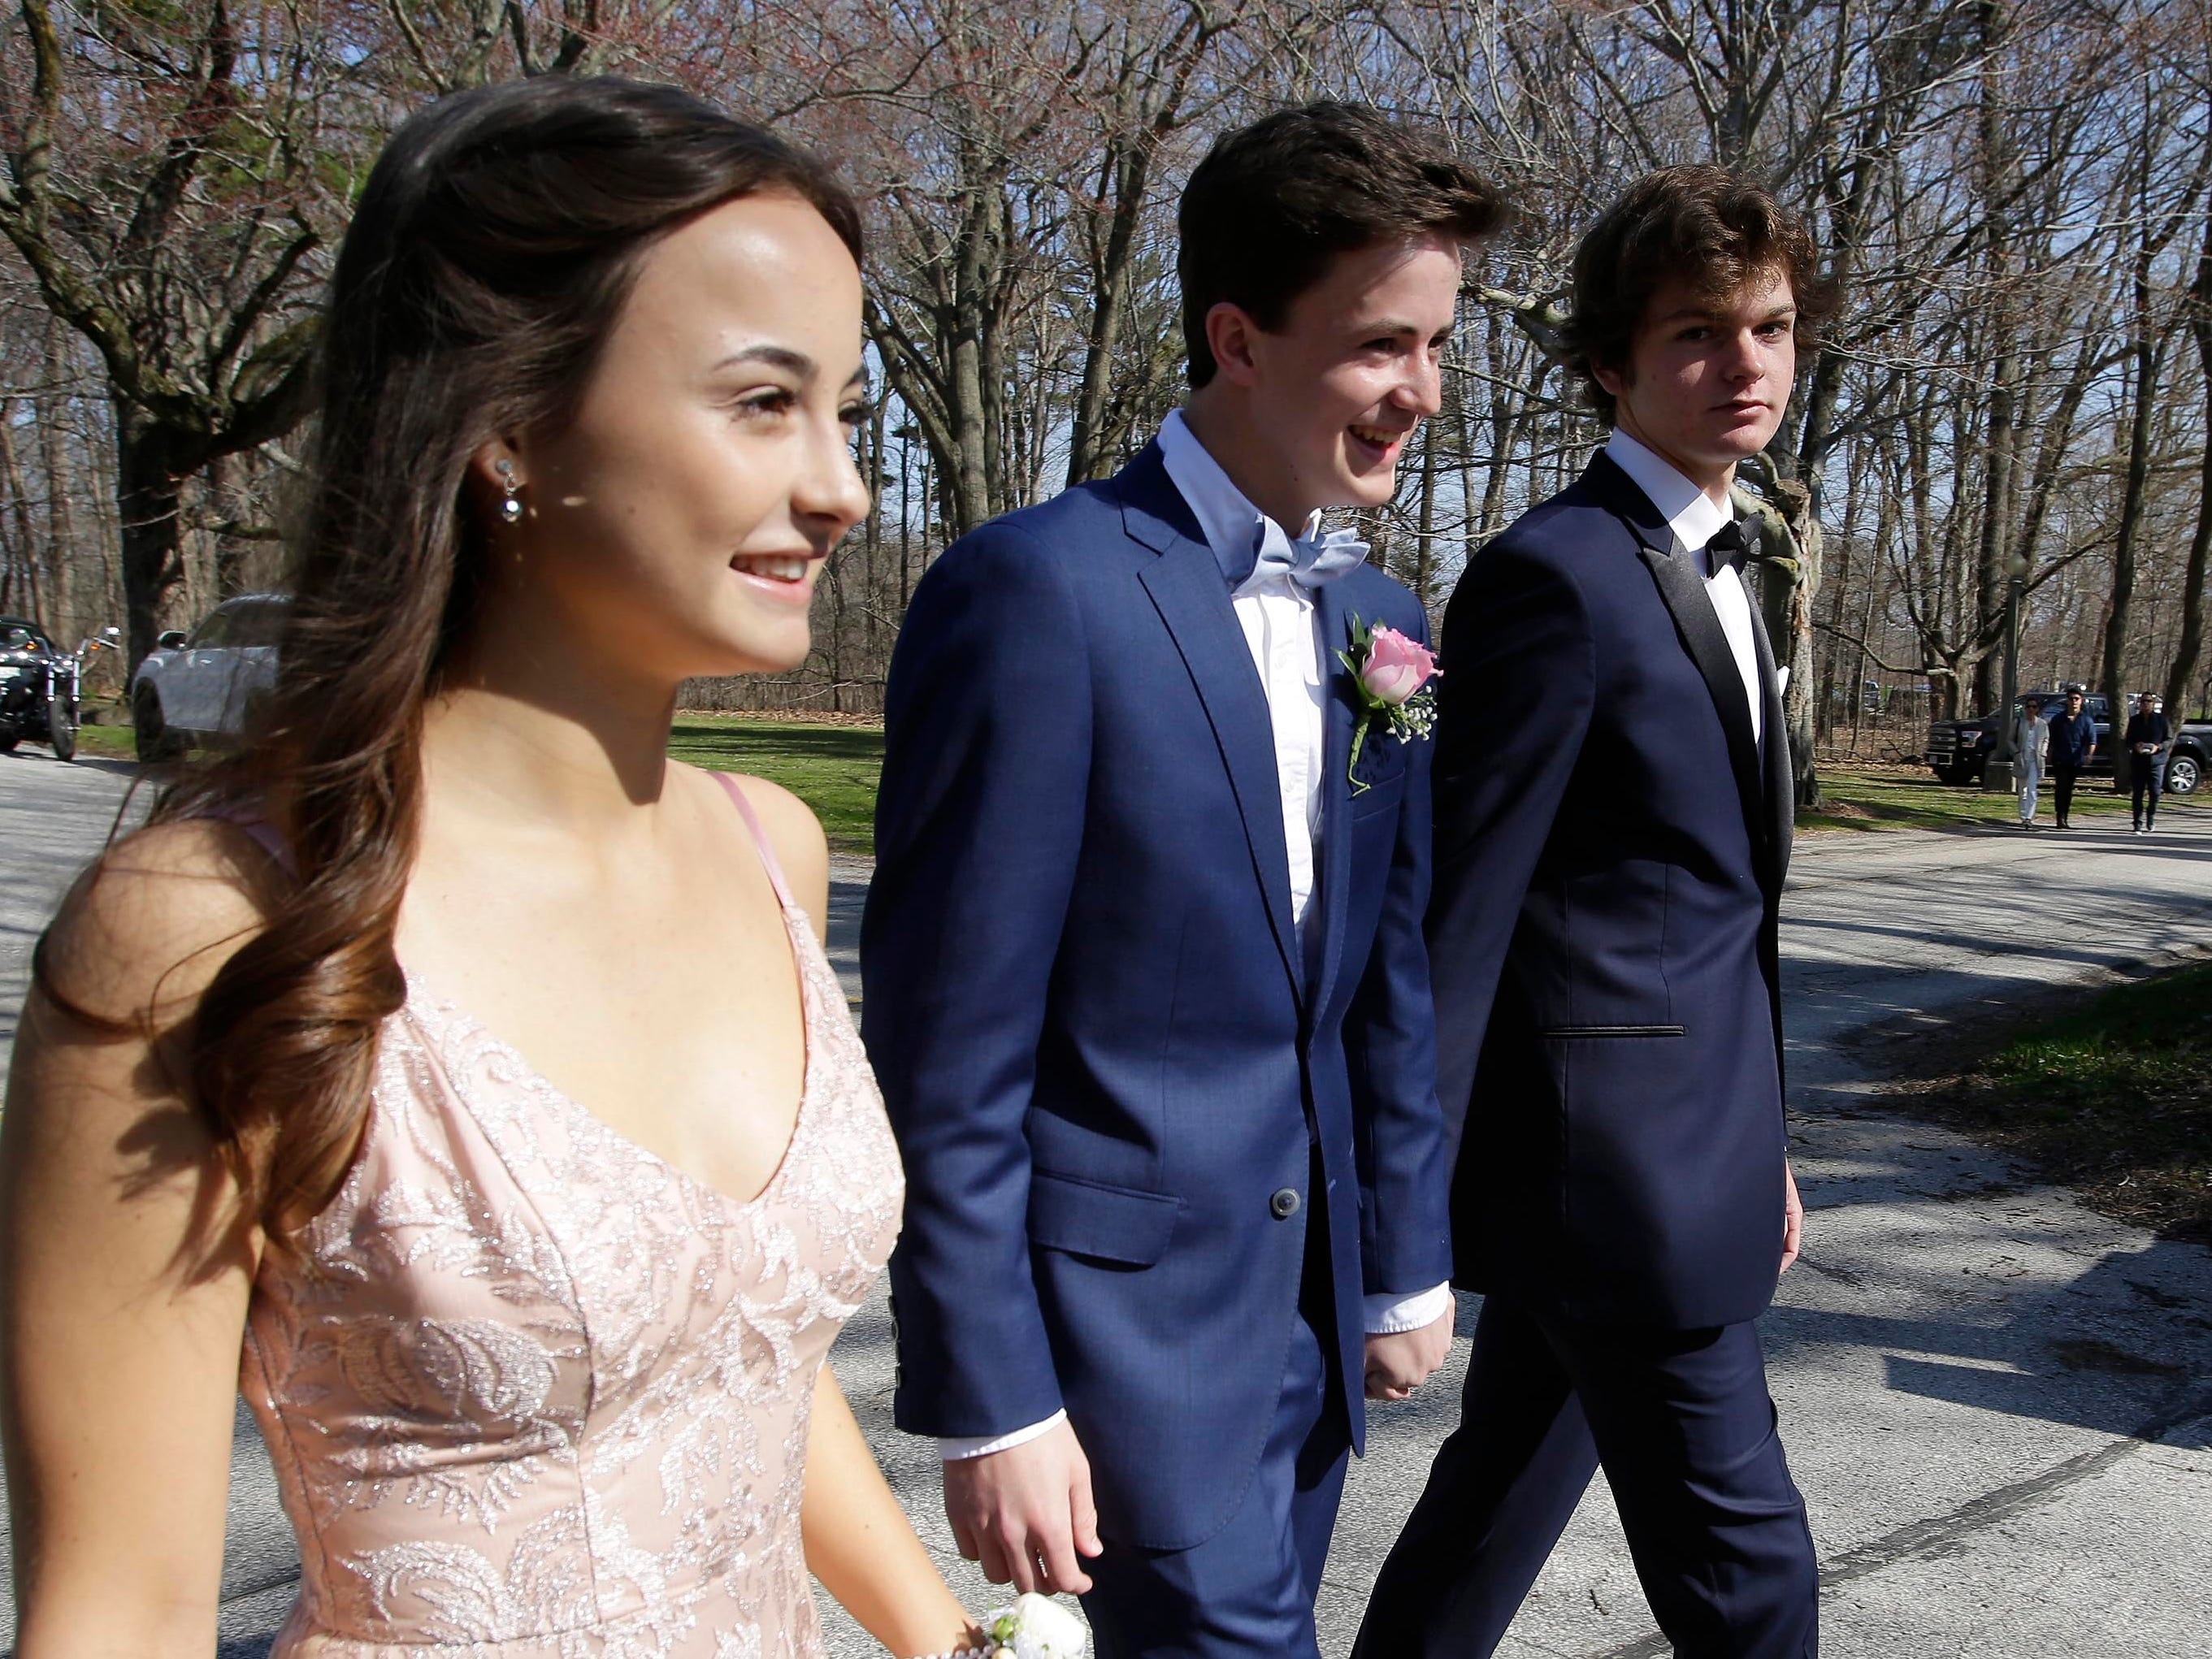 Scenes from the Kohler Prom photo sessions at the Waelderhaus, Saturday, May 4, 2019, in Kohler, Wis.